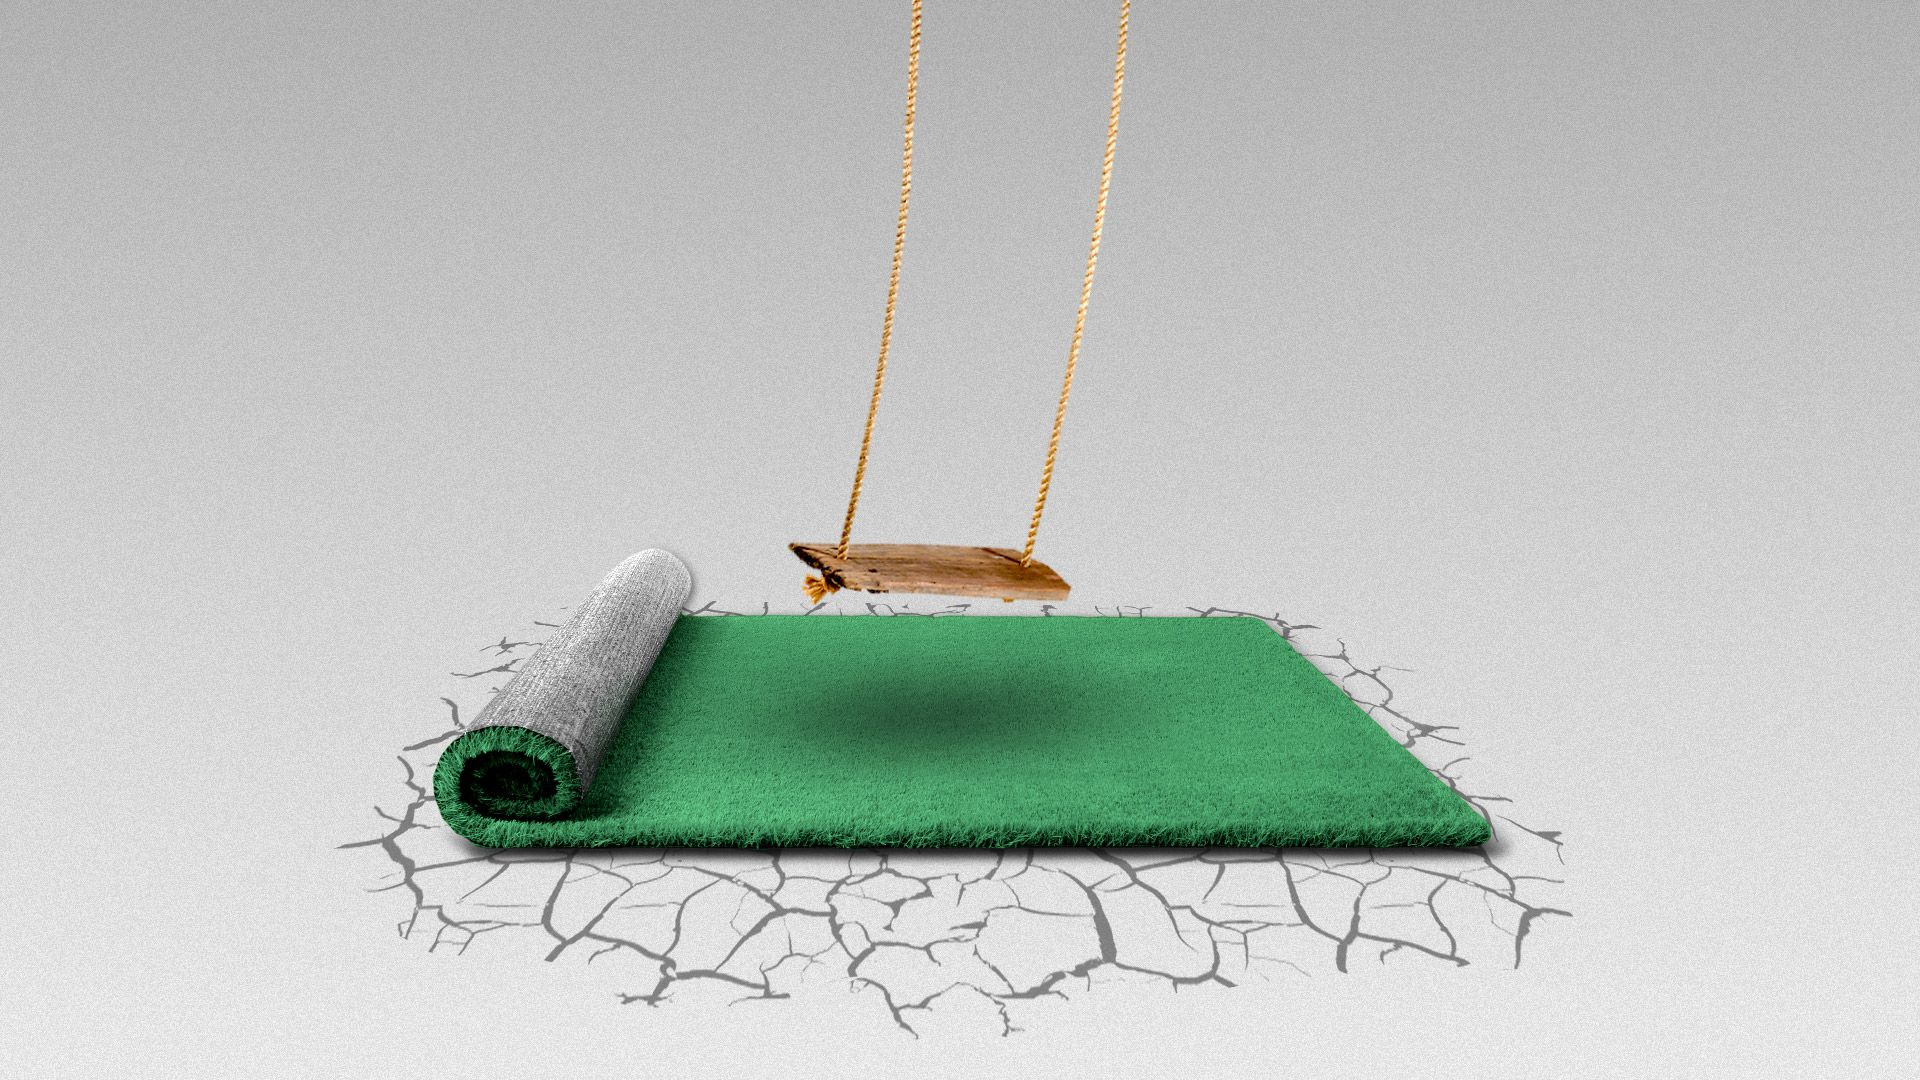 Illustration of a patch of grass on a parched piece of land with a swing above